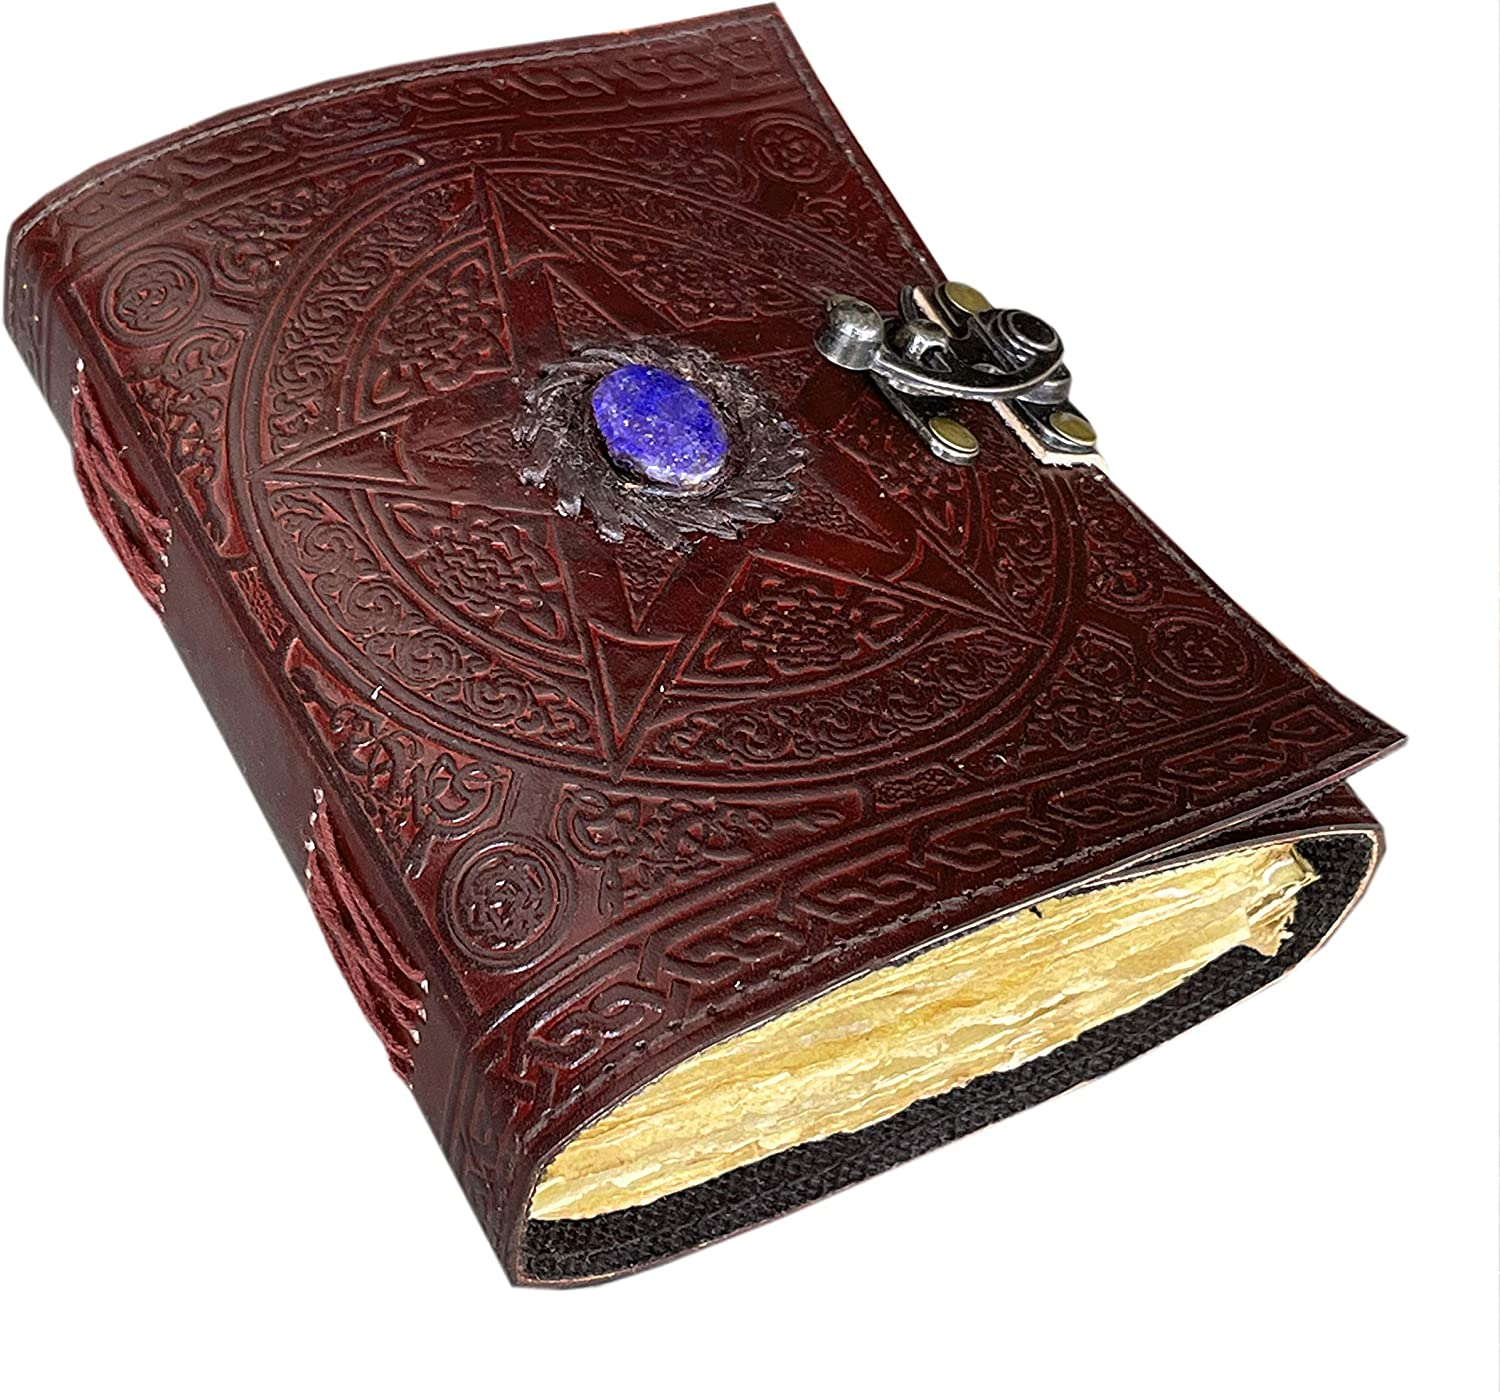 Pentagram Leather Journal with Third Eye Stone Lock Clasp Prop Vintage Blank Spell Book of Shadows Embossed Deckle Vintage 200 Pages Sketchbook & Notebook for Him & Her 7 x 5 Inch (Brown)